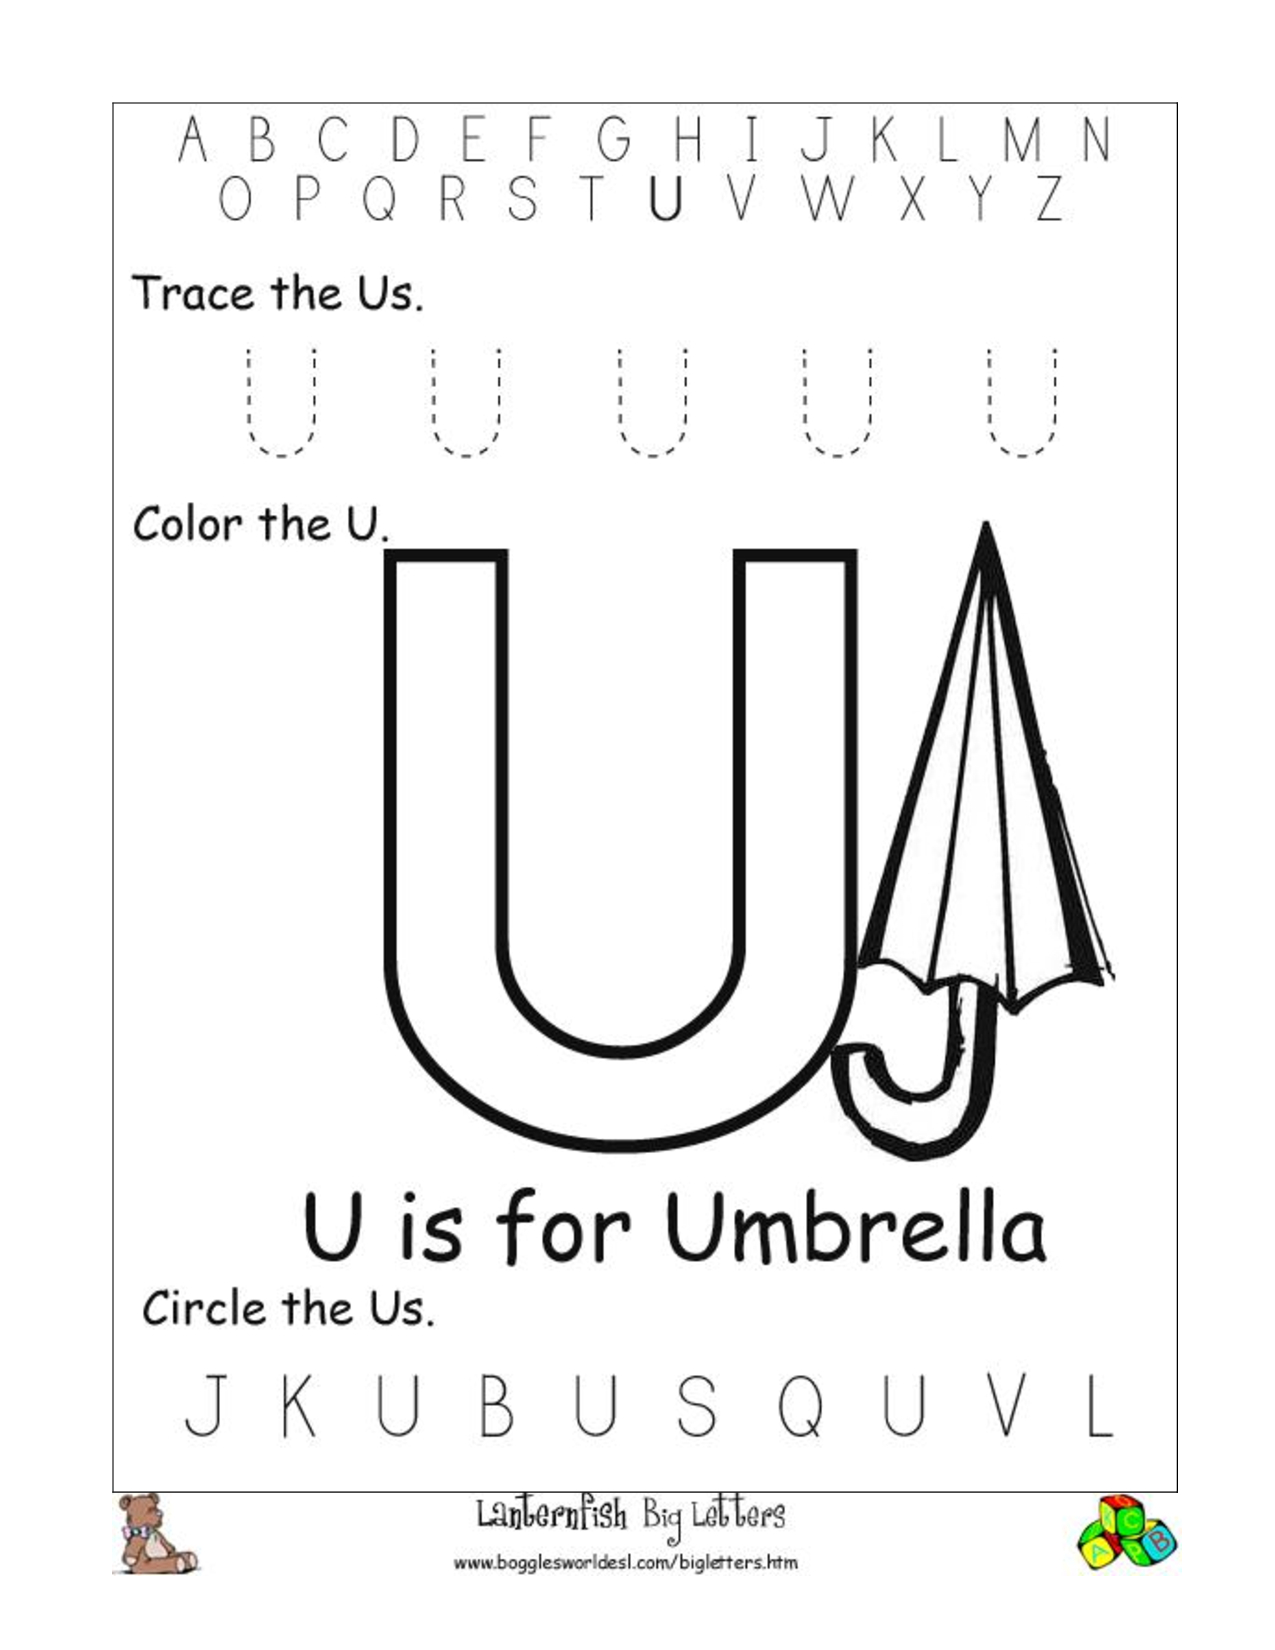 Alphabet Worksheets For Preschoolers | Alphabet Worksheet for Letter U Worksheets For Pre-K